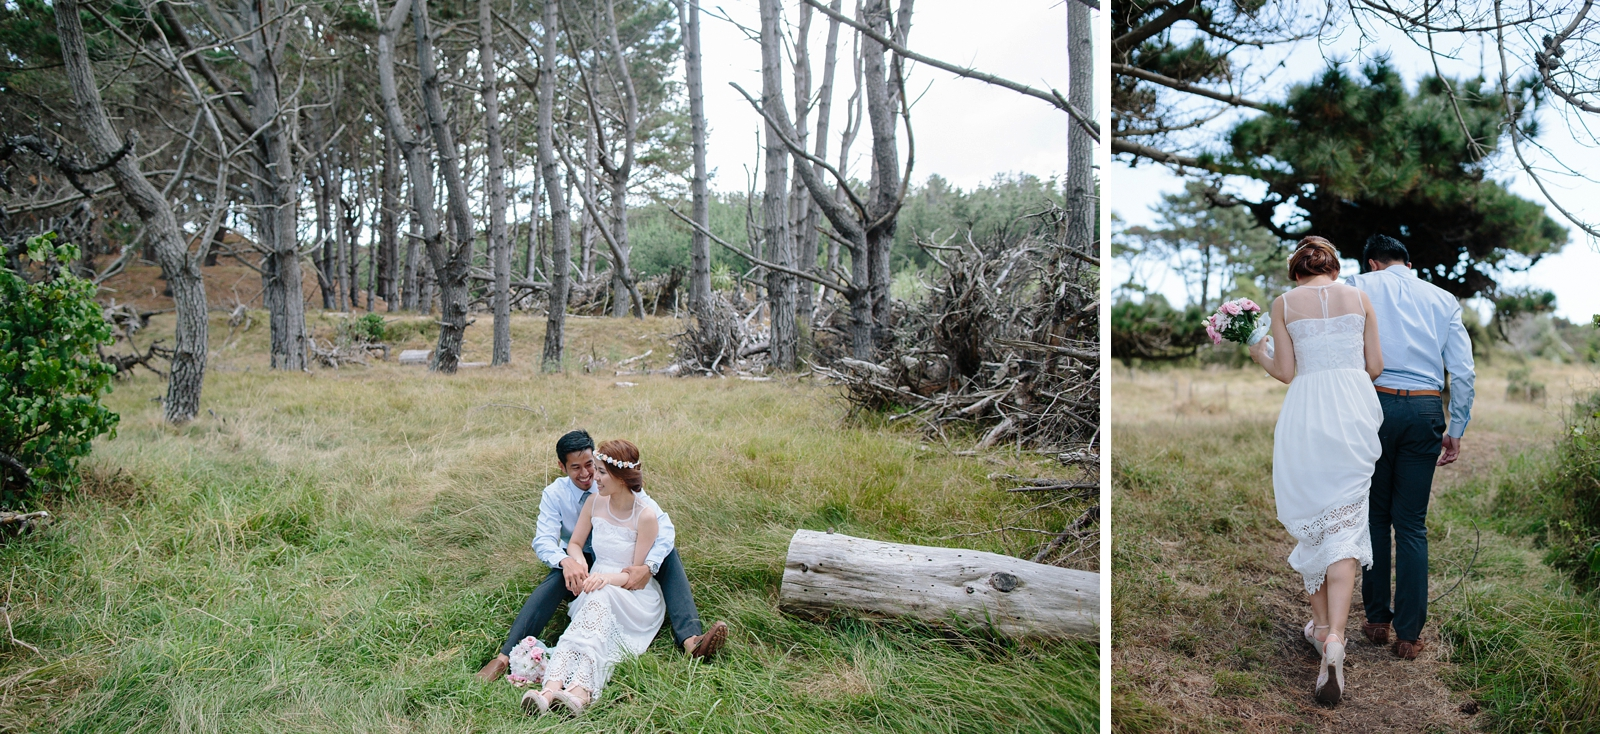 RamGia_Auckland Wedding Photographer_Patty Lagera_0055.jpg